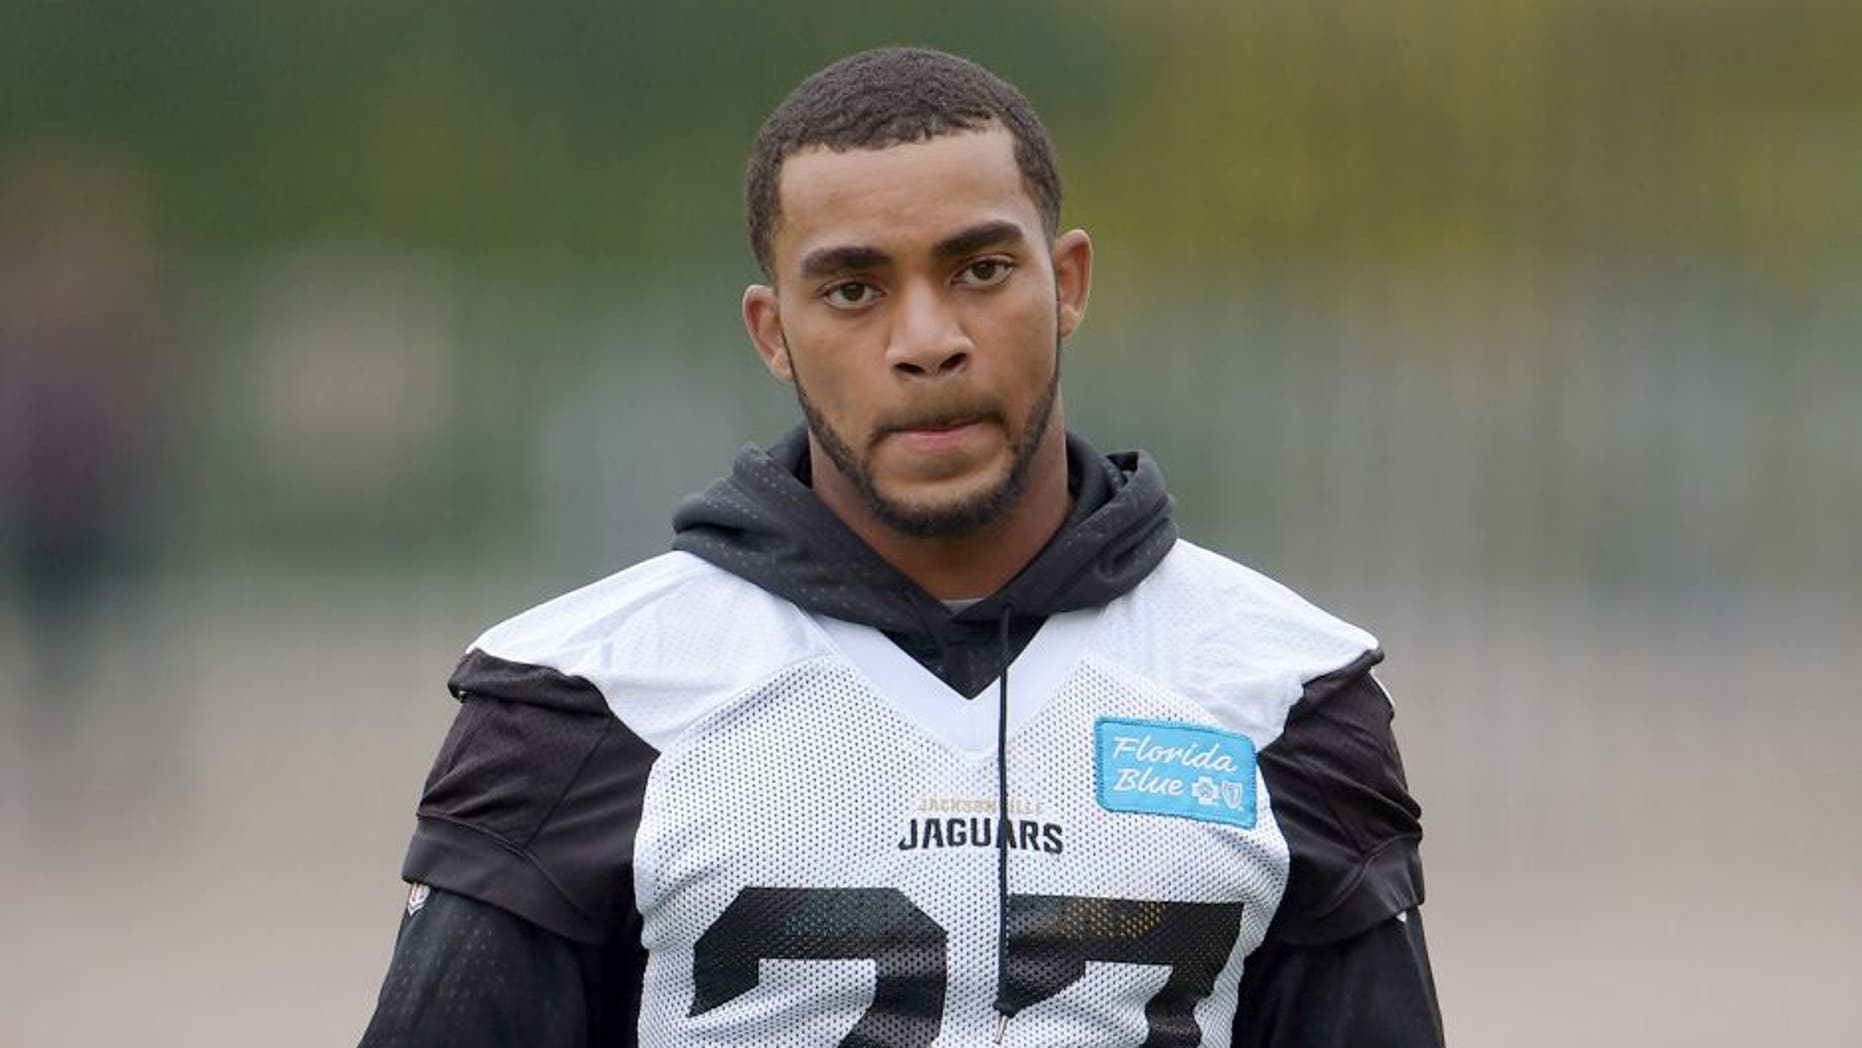 Oct 23, 2015; London, United Kingdom; Jacksonville Jaguars cornerback Dwayne Gratz (27) looks on during practice at Allianz Park in preparation for the NFL International Series game against the Buffalo Bills. Mandatory Credit: Kirby Lee-USA TODAY Sports